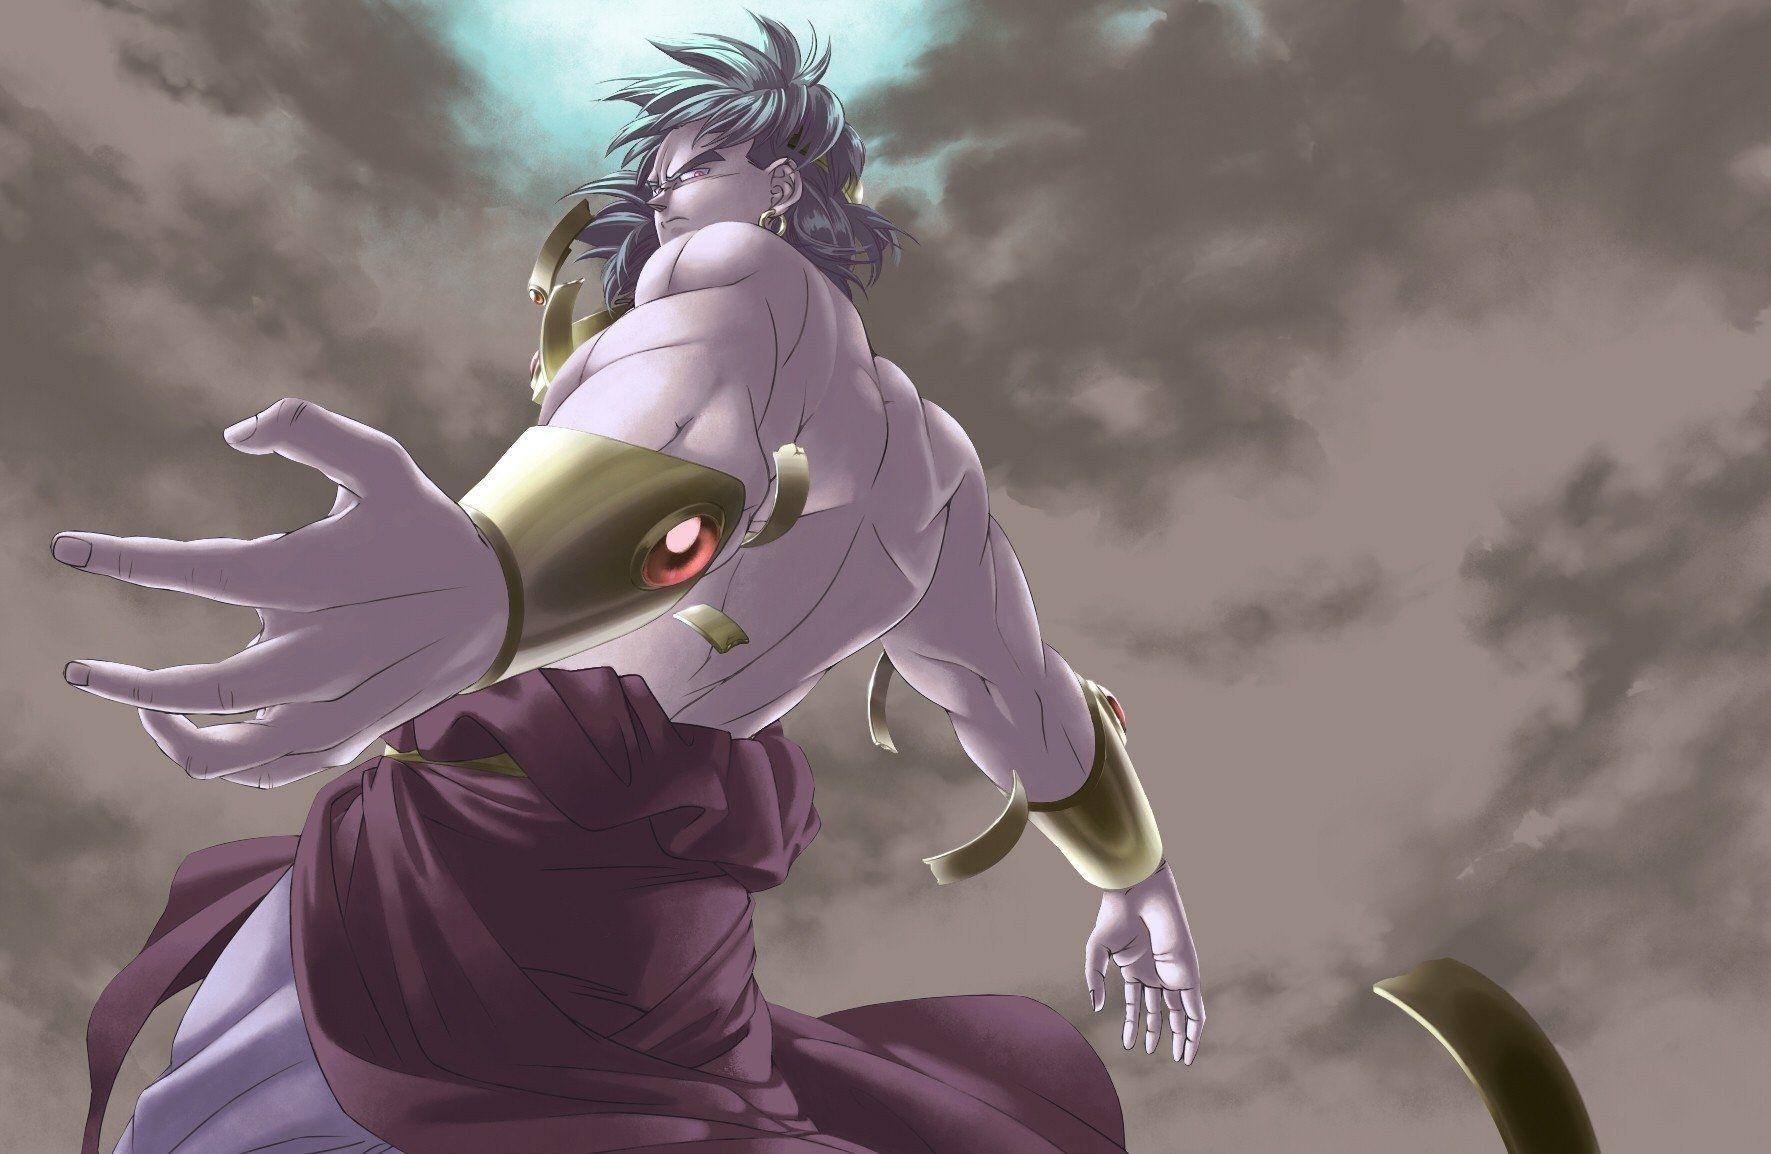 Broly Wallpapers and Backgrounds Image